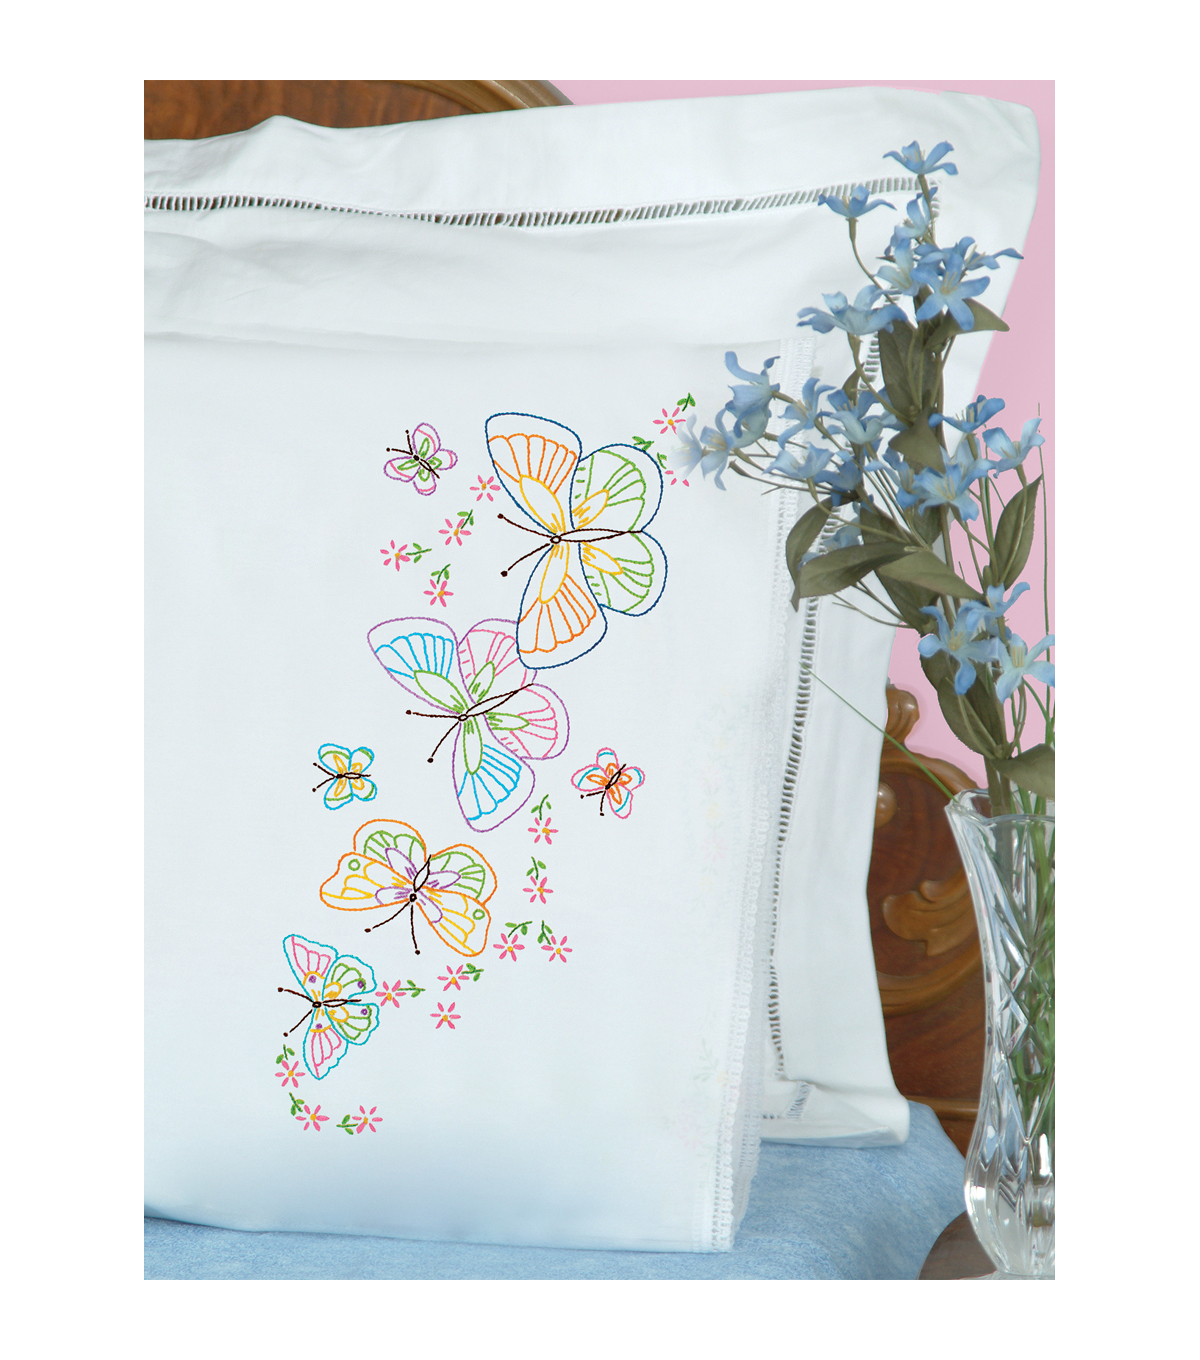 Jack Dempsey Stamped Pillowcases With Lace Edge Fluttering Butterflies